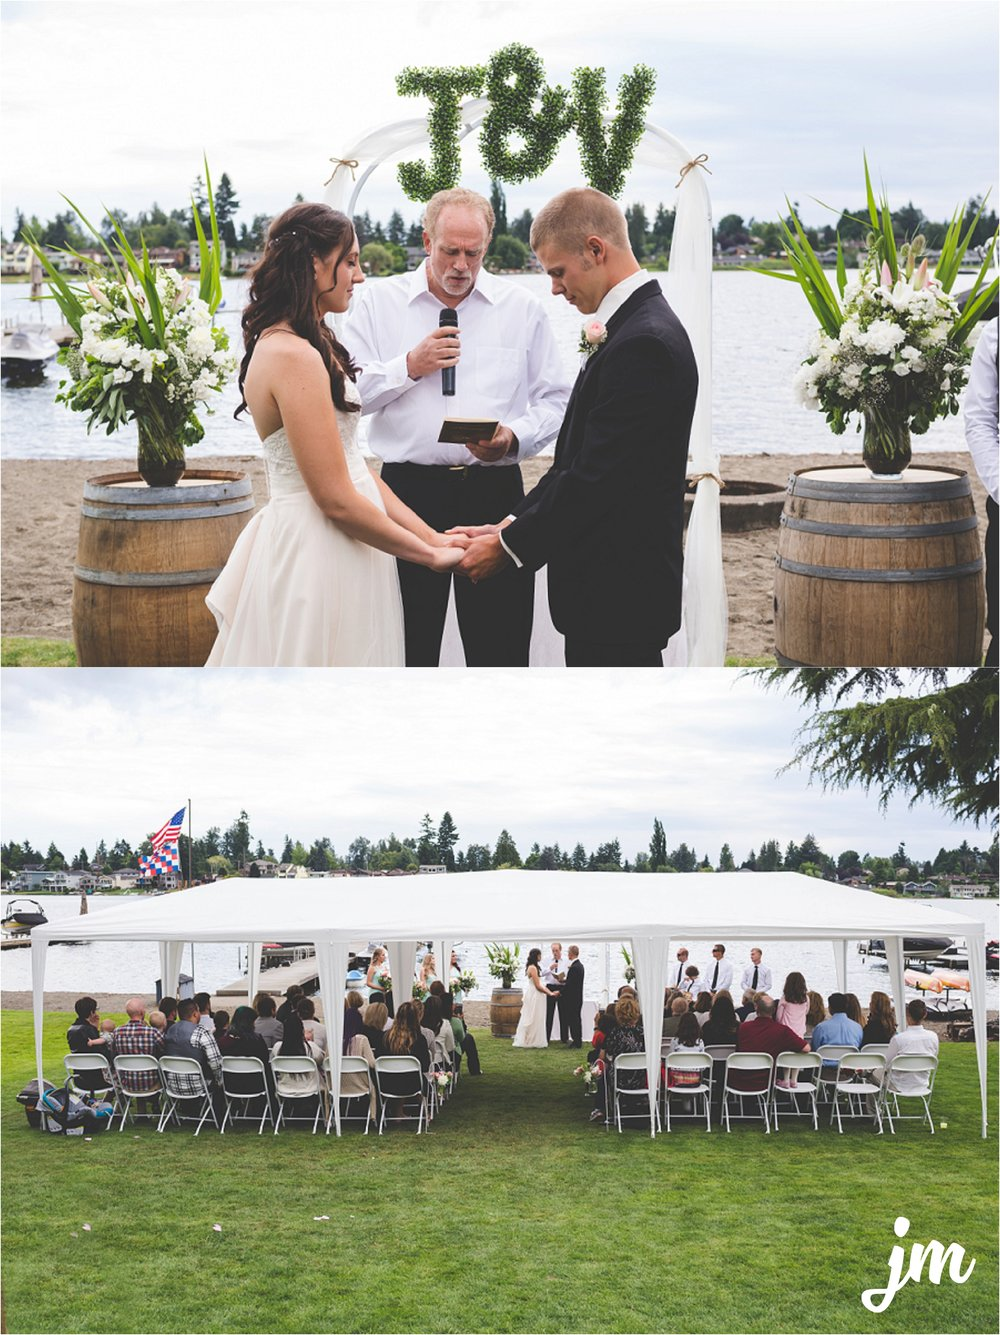 jannicka-mayte-intimate-backyard-lake-wedding-kent-wa-pacific-northwest-wedding-photographer_0043.jpg